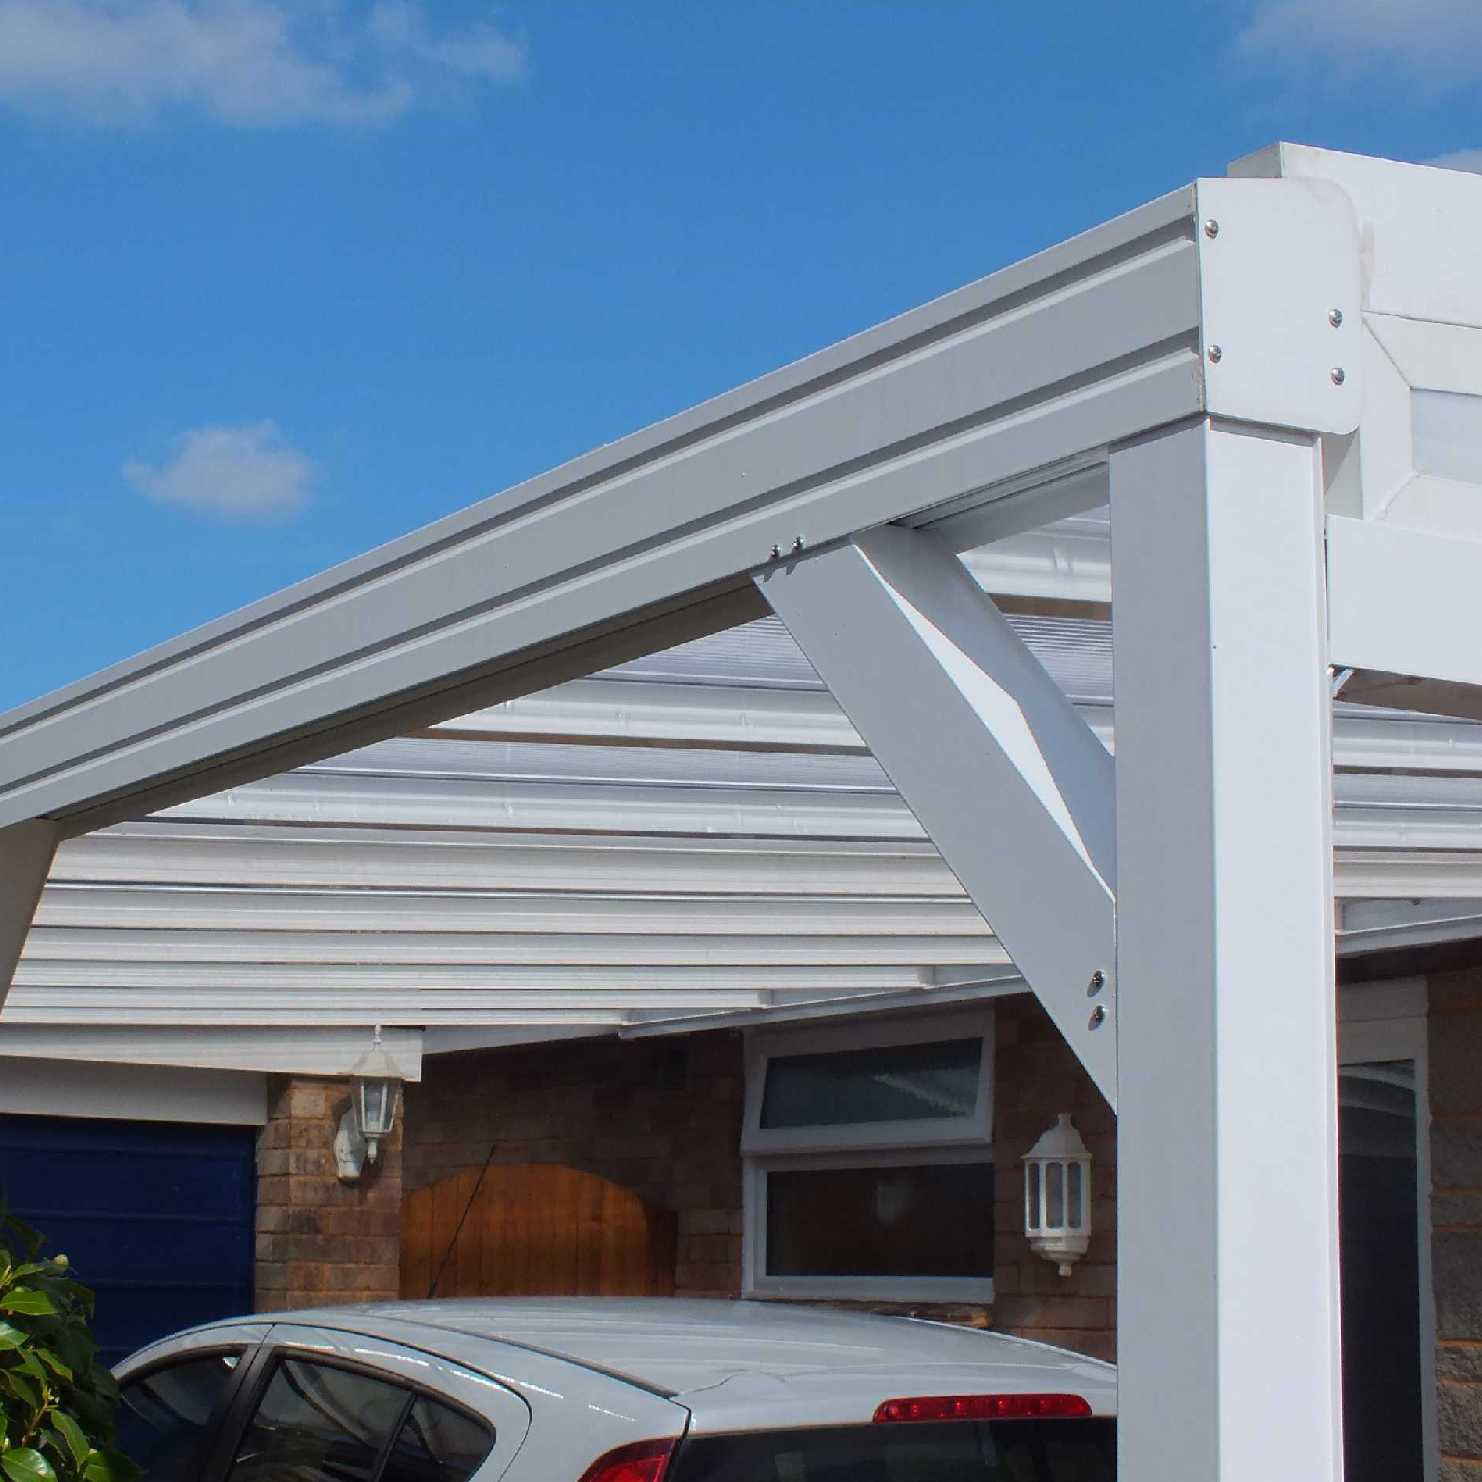 Buy Omega Smart White Lean-To Canopy with 16mm Polycarbonate Glazing - 7.4m (W) x 4.5m (P), (4) Supporting Posts online today